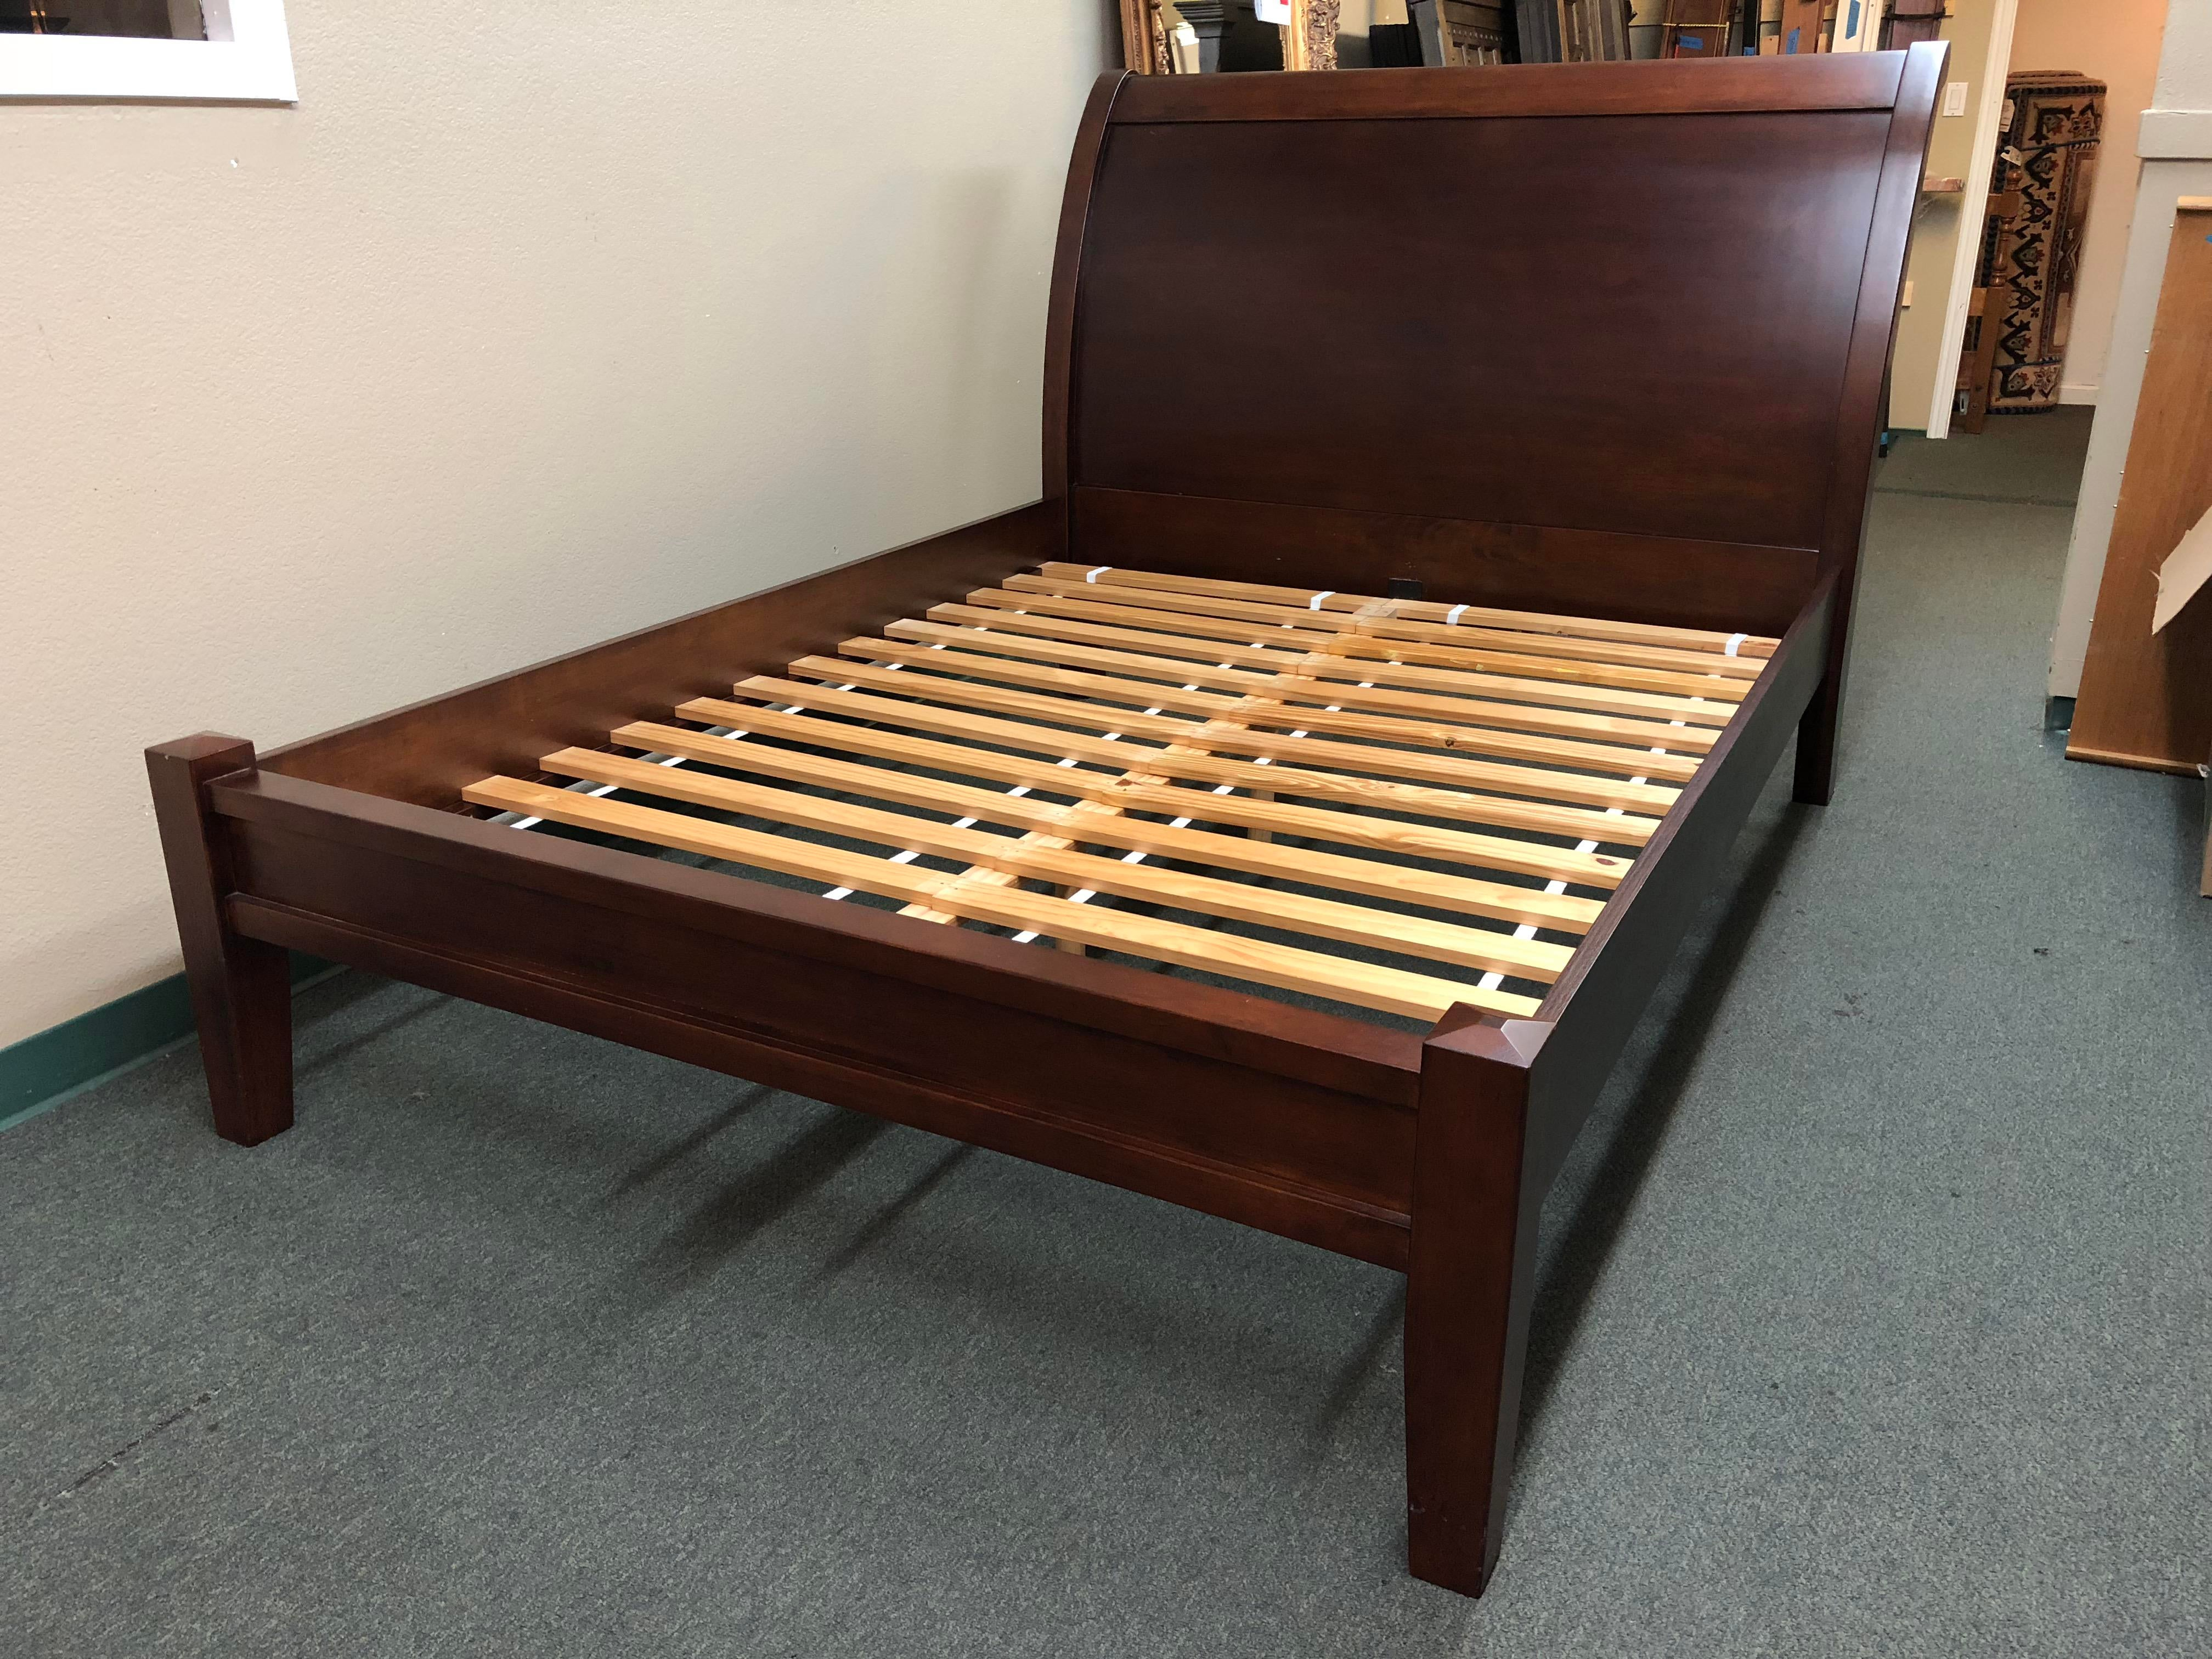 Design Plus Gallery Presents A Queen Size Bed Frame By Pottery Barn. From  The Valencia